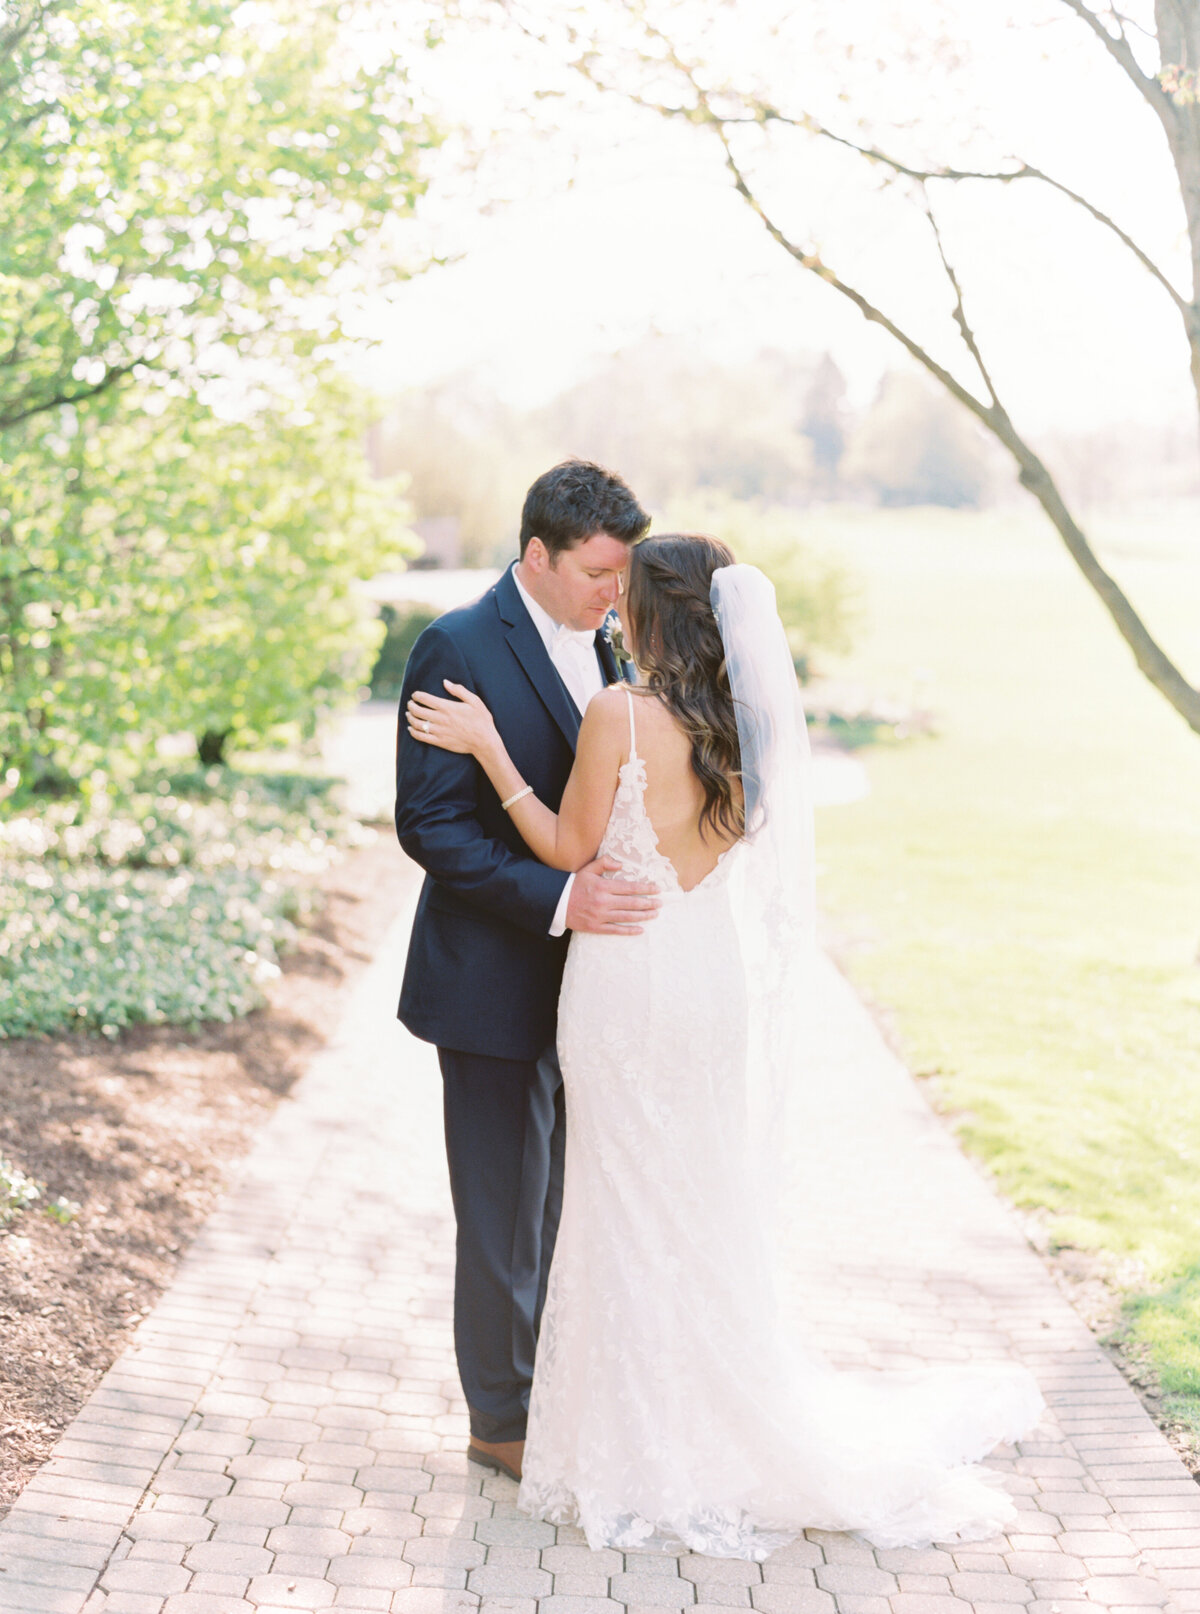 TiffaneyChildsPhotography-ChicagoWeddingPhotographer-Chloe+Jon-HinsdaleCountryClubWedding-BridalPortraits-116